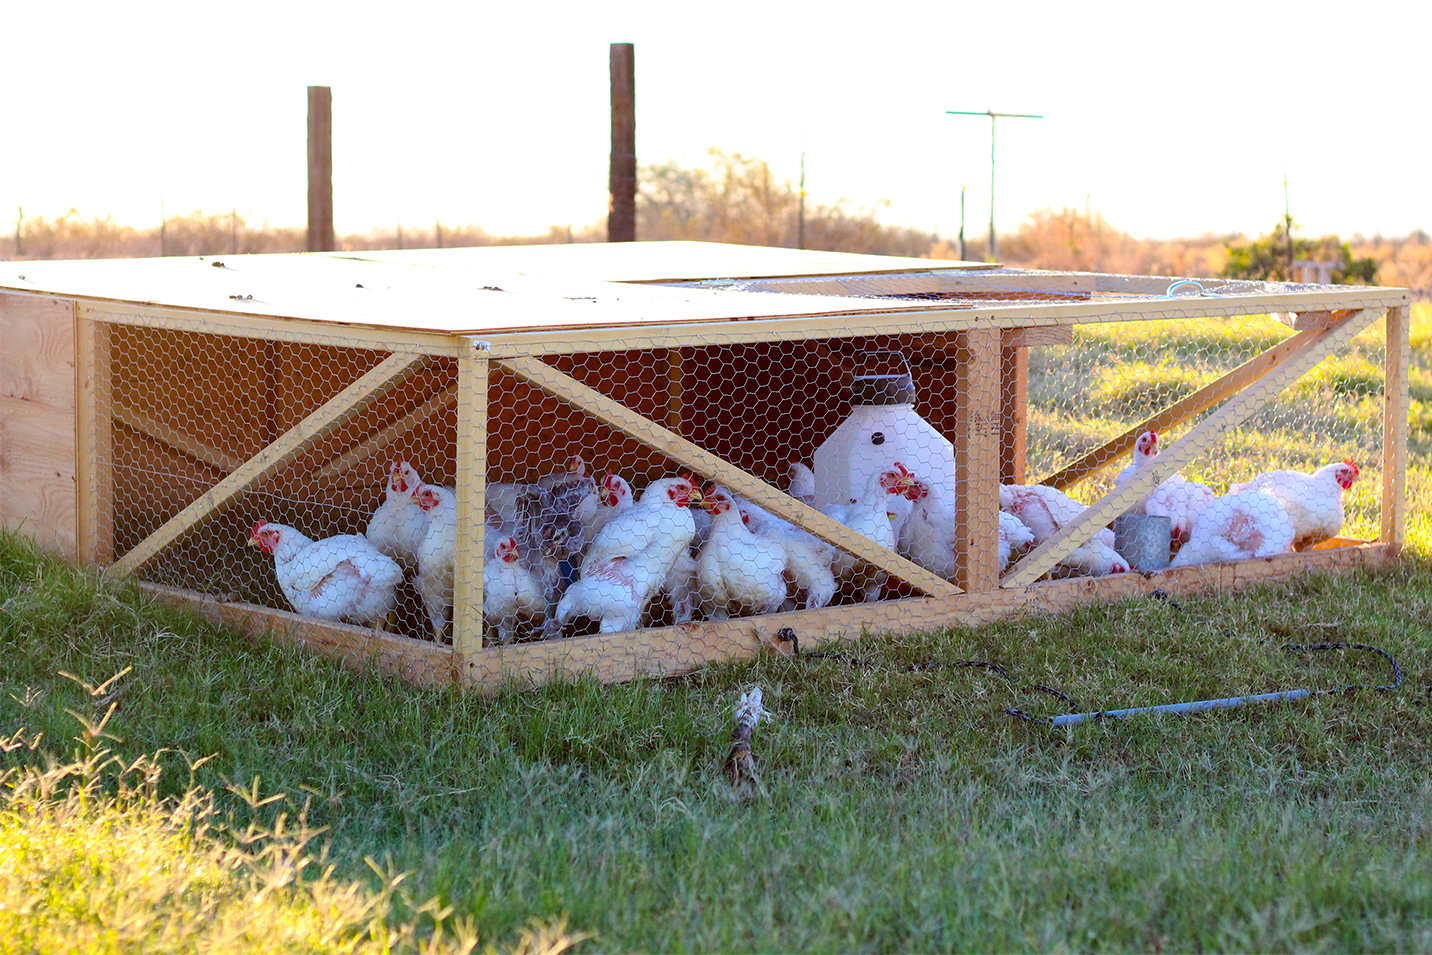 Chicken tractor designs for your meat chickens. Free Dimensions (DIY Plans) with wheels for your broilers moveable and portable coop. For free-range, pastured chickens on grass. Easy to make.